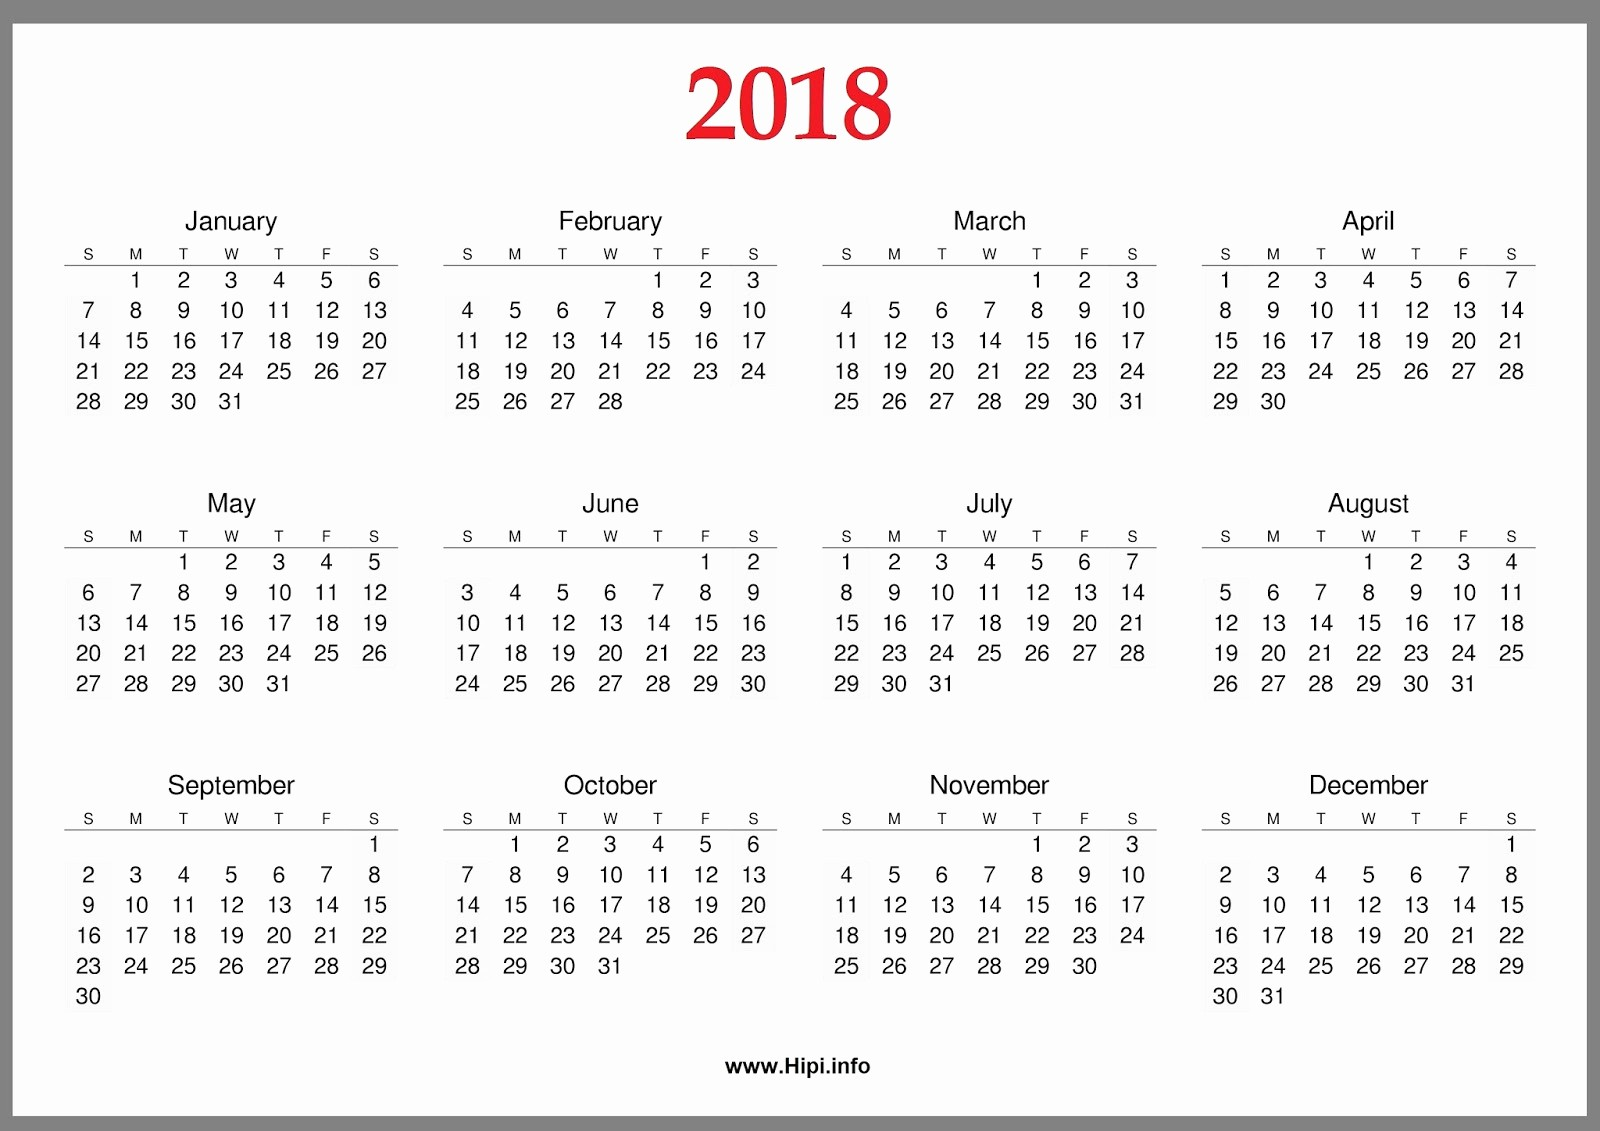 Free Printable Yearly Calendar 2018 Unique Free 2018 Yearly & Monthly Printable Calendar